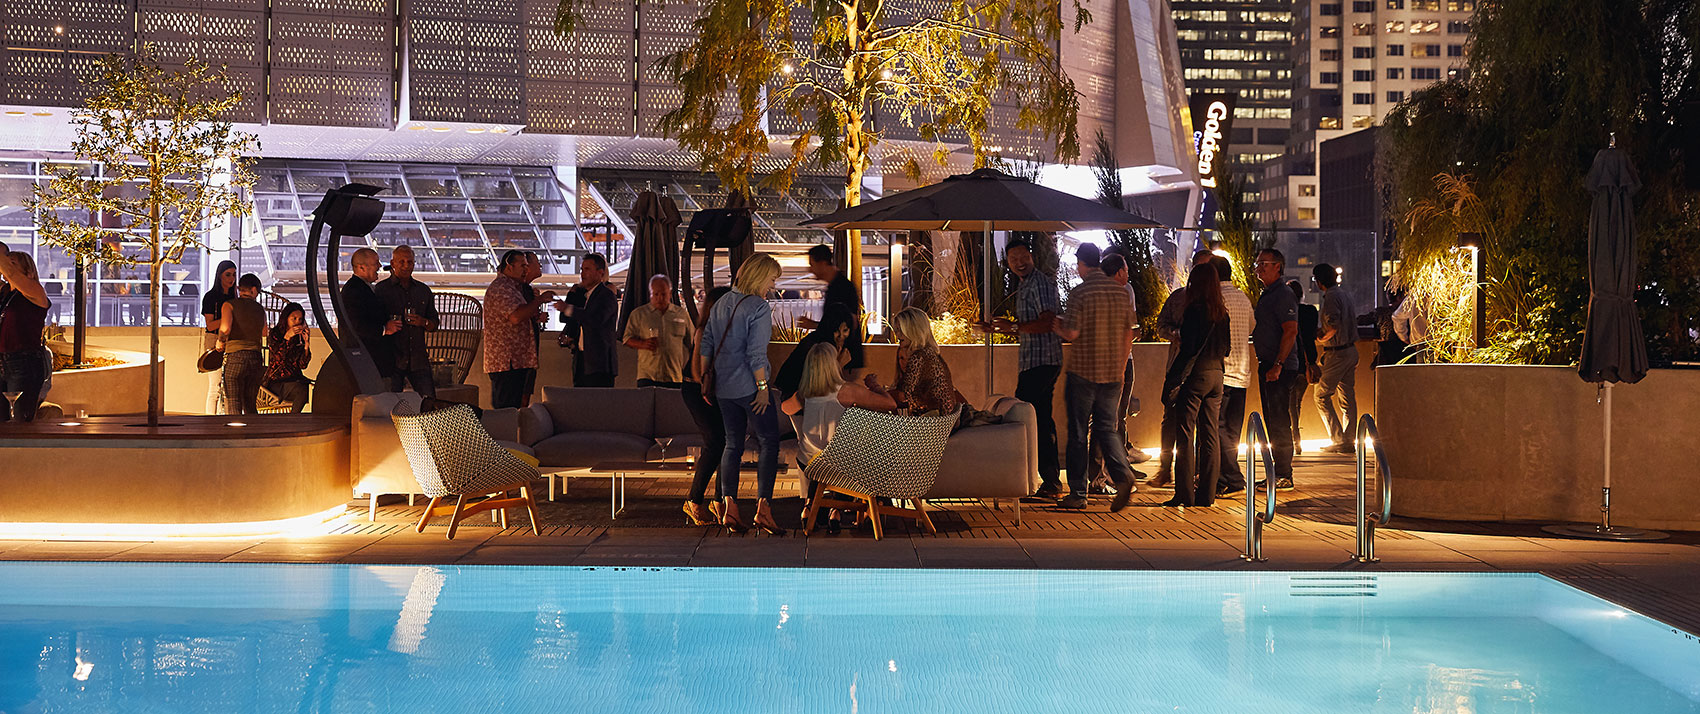 kimpton-sacramento-california-sawyer-hotel-rooftop-pool-city-view-event